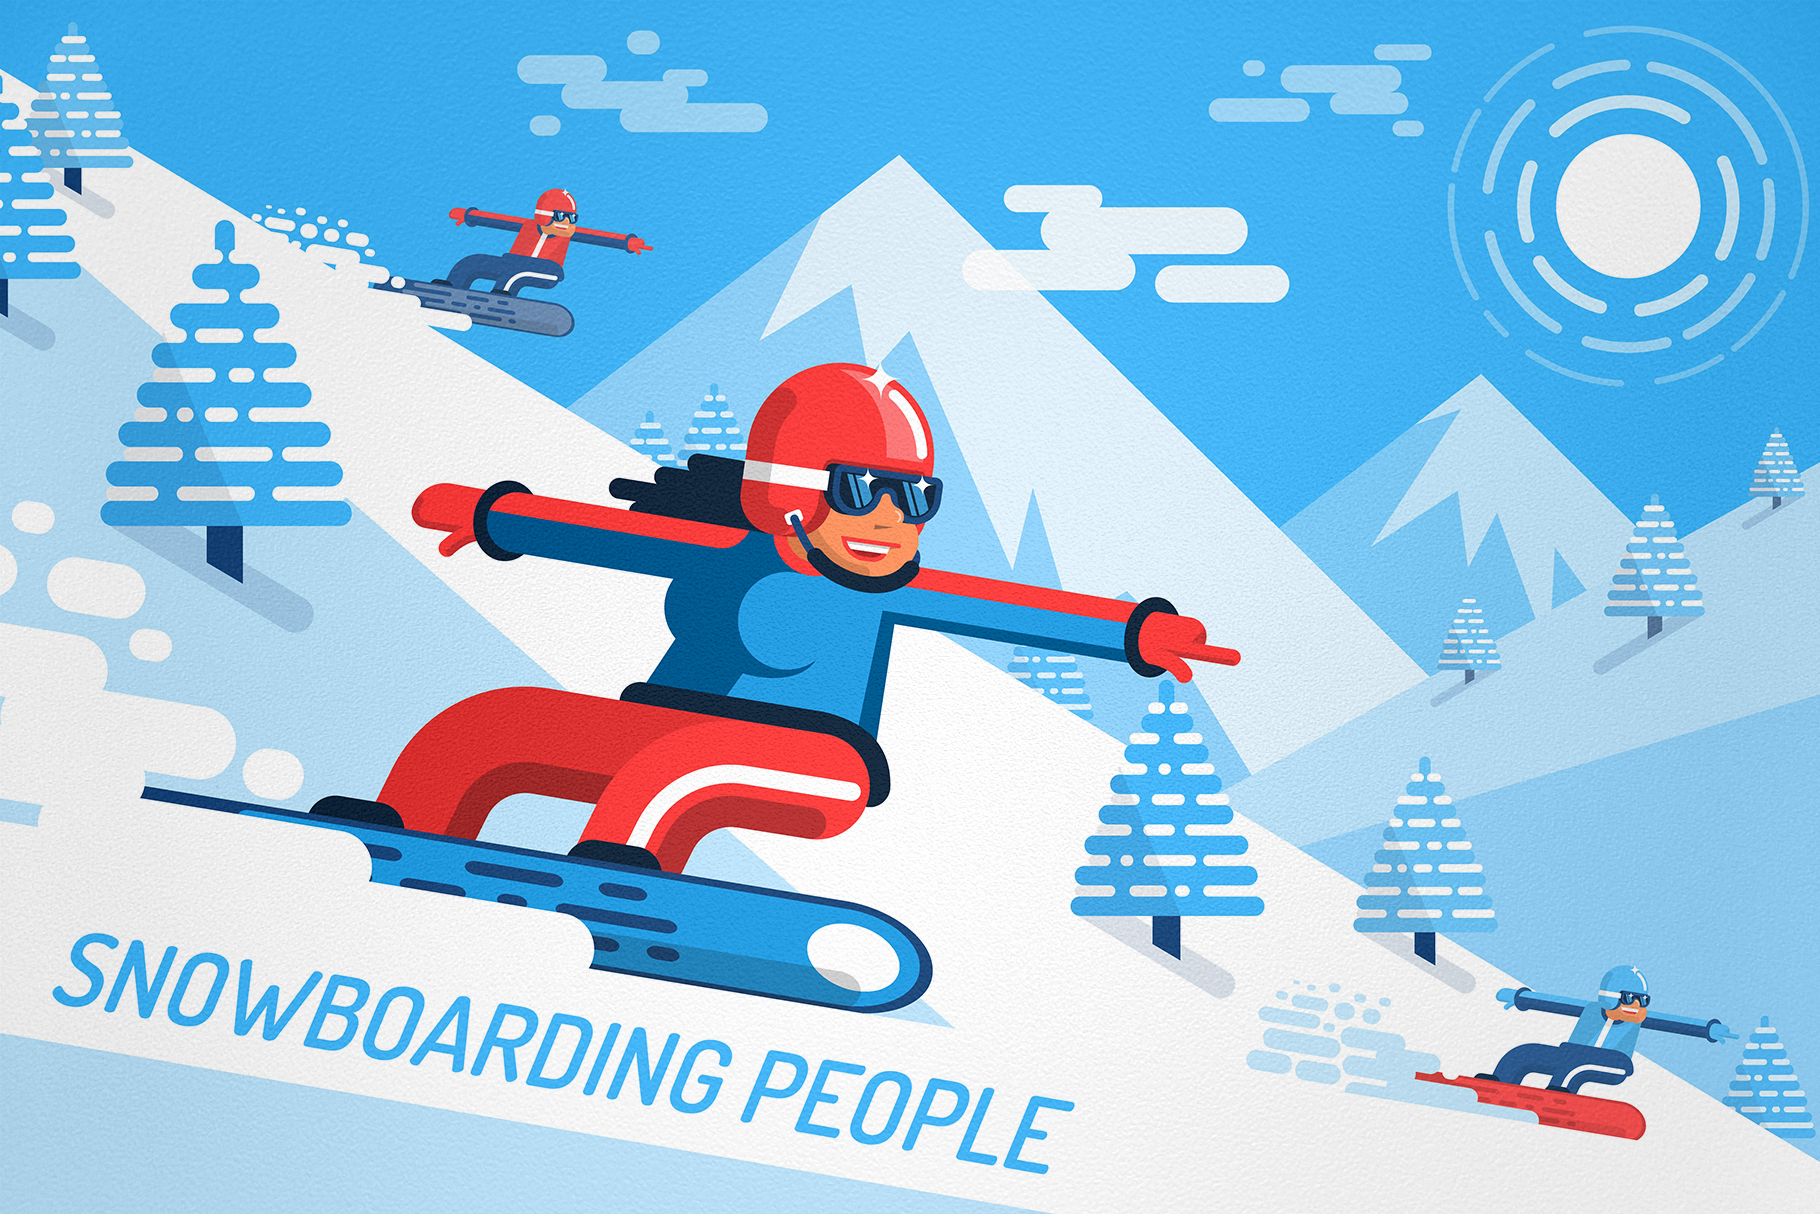 Snowboarding People example image 4